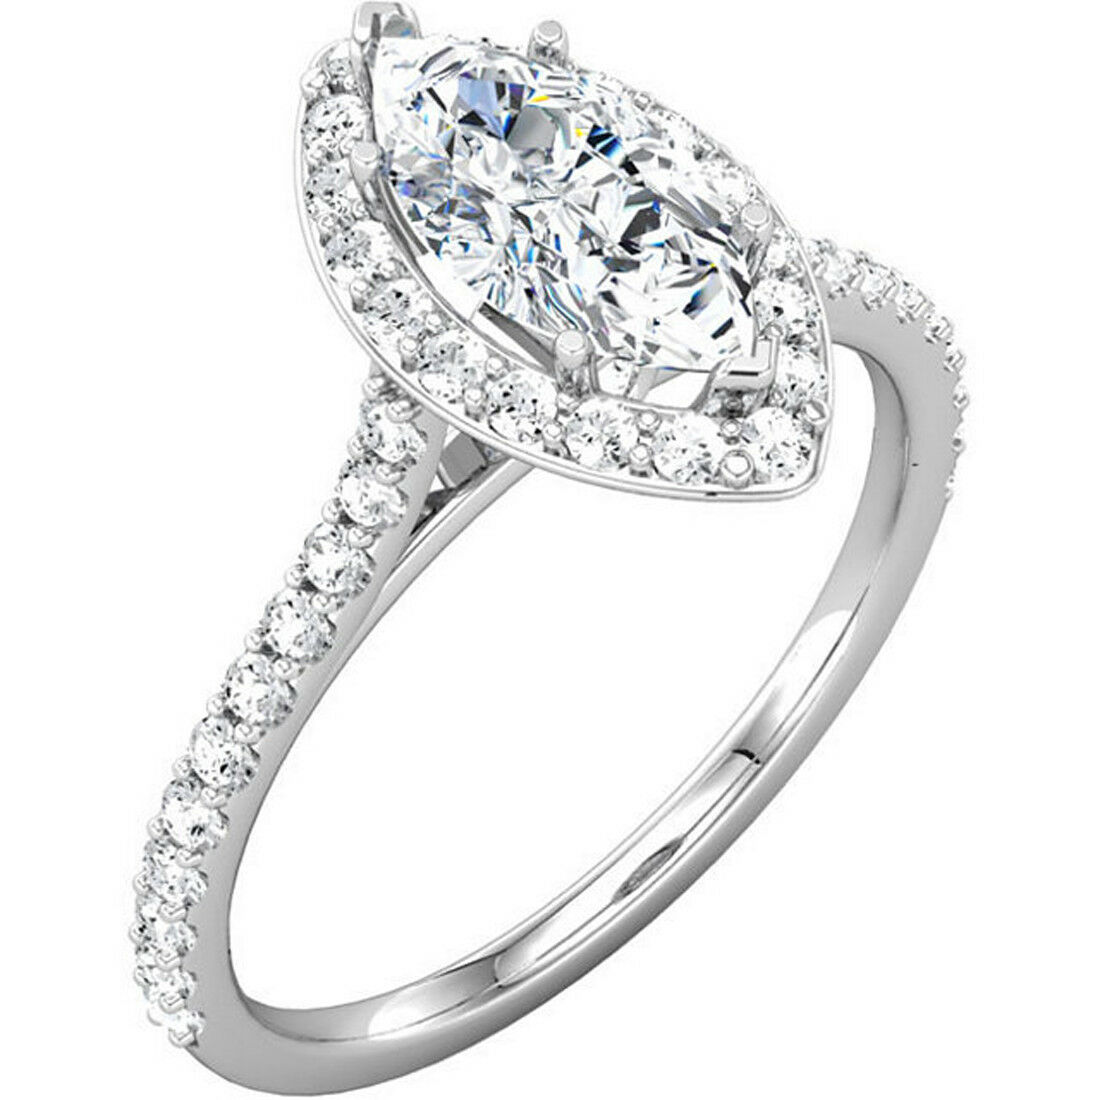 1.50 Ct Halo Marquise Cut Diamond Engagement Ring U Setting  H,VS2 GIA 18K WG 4